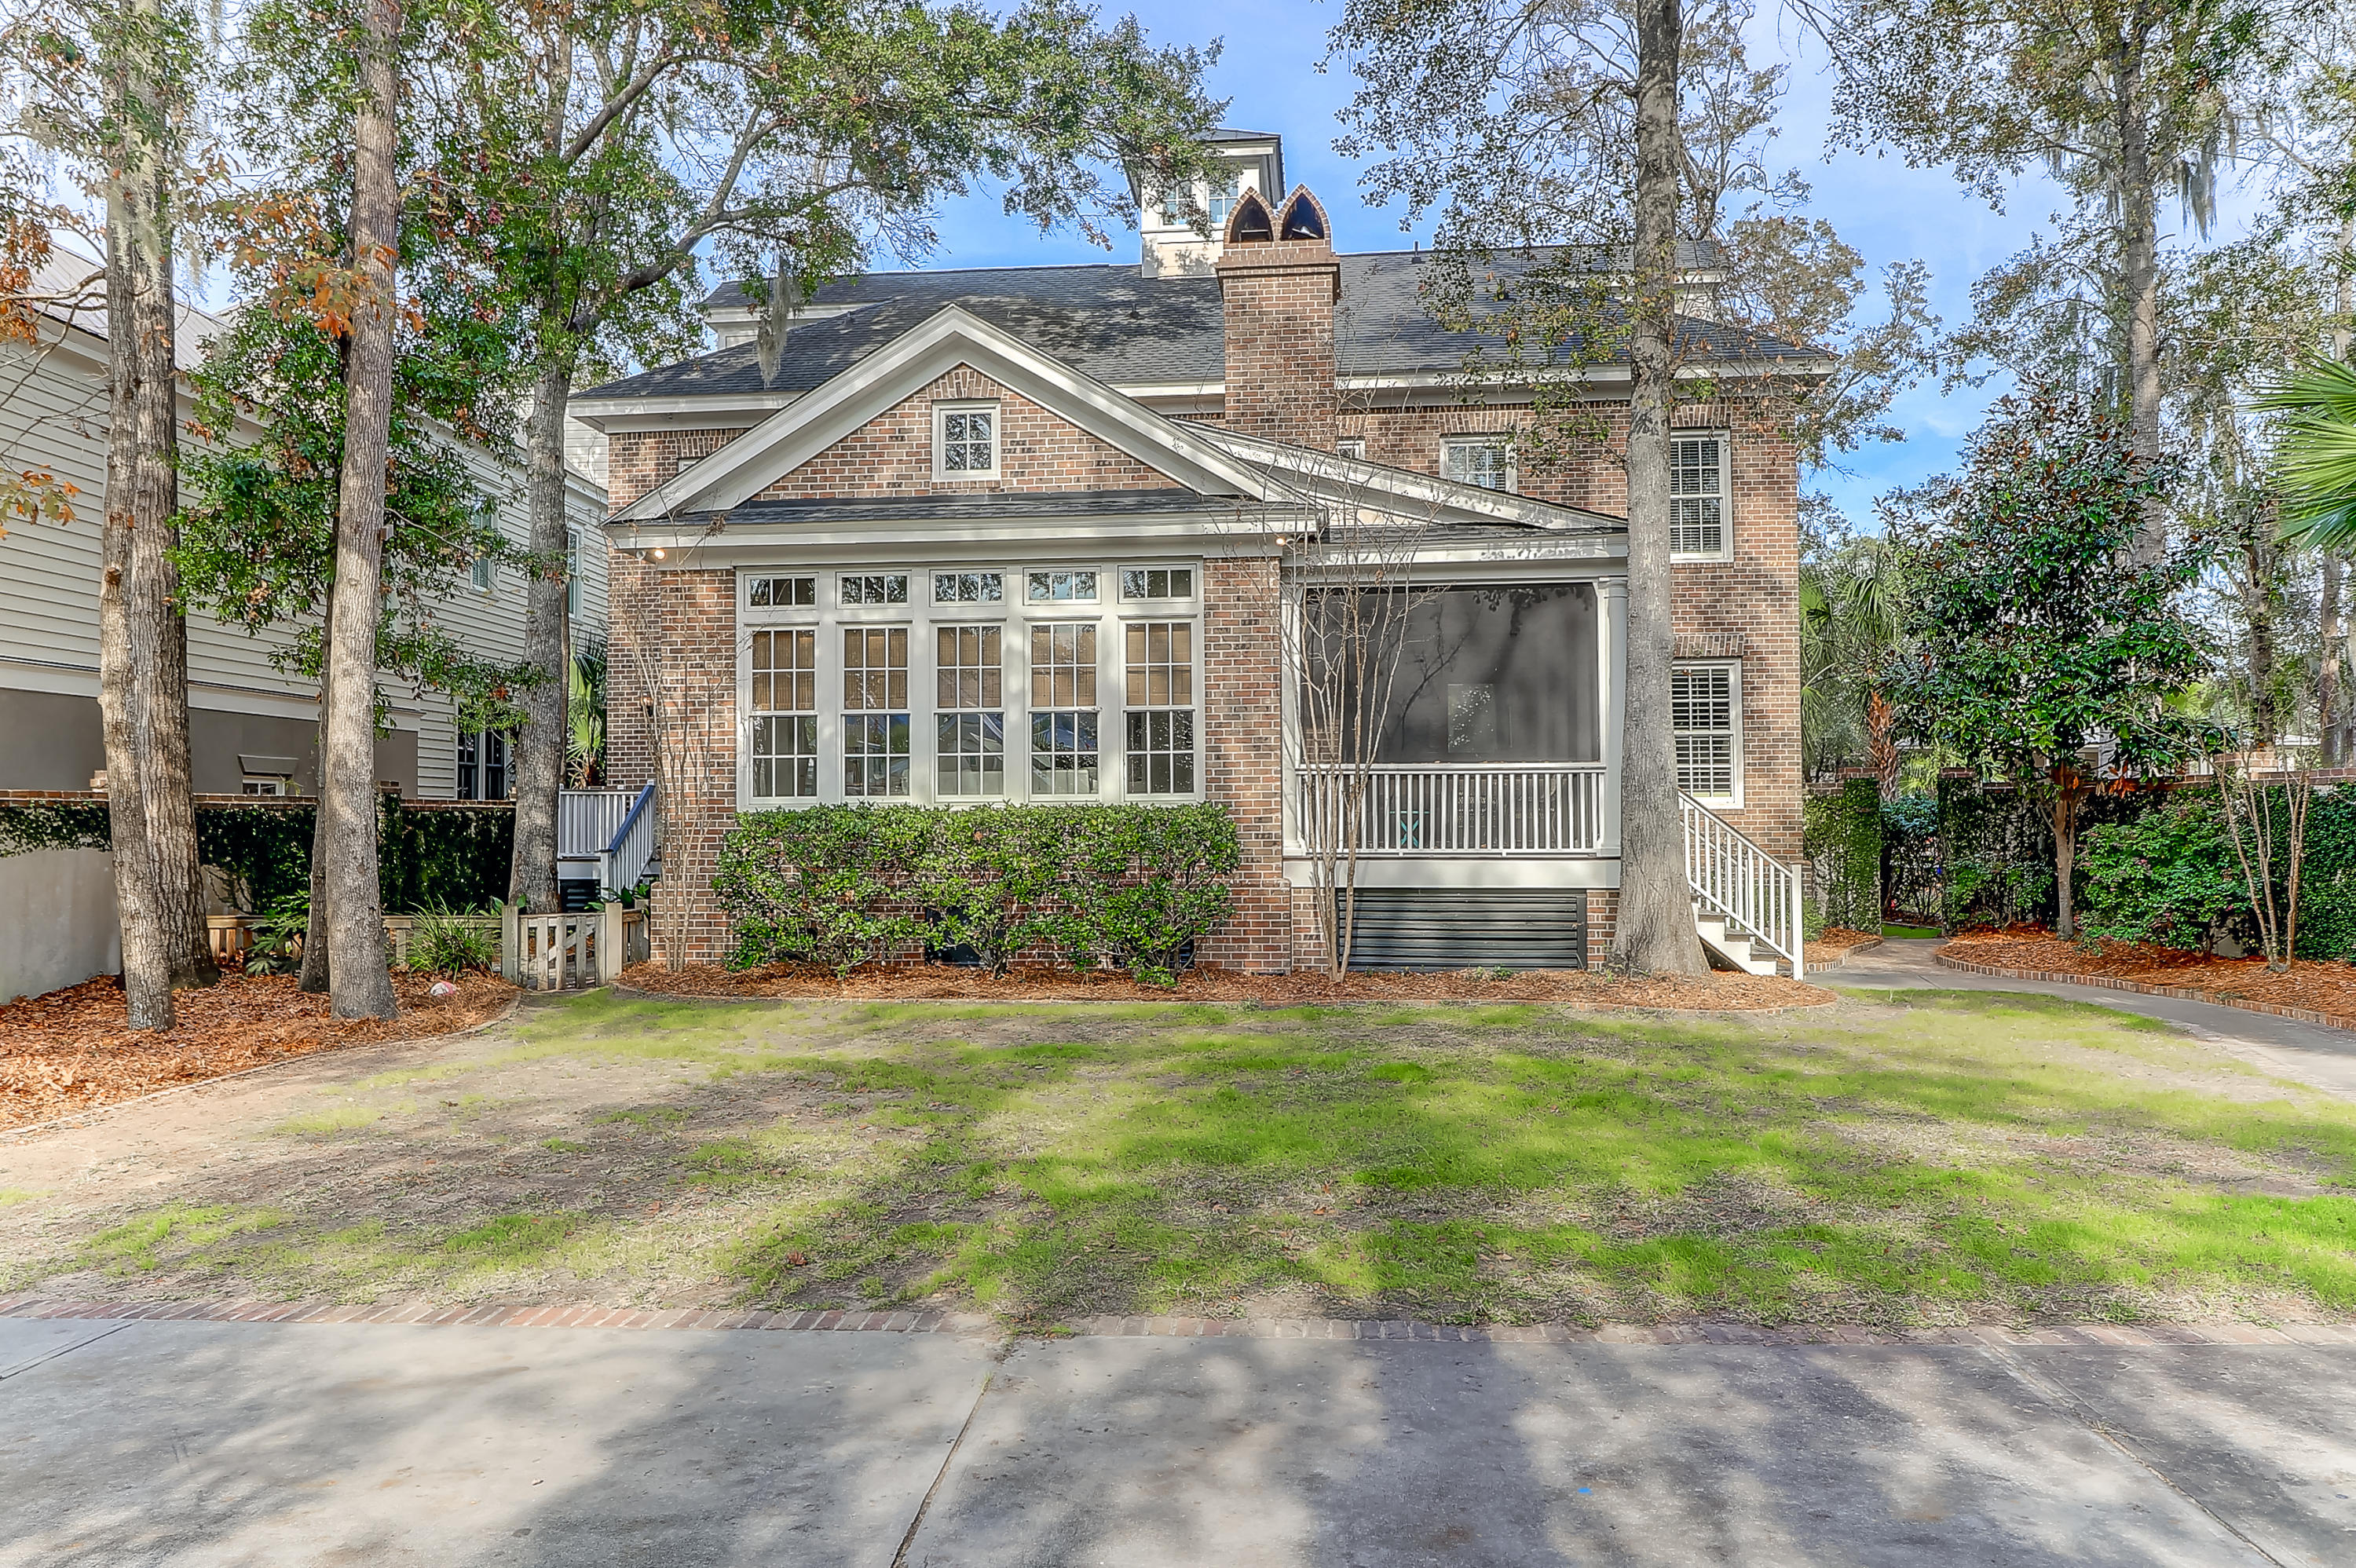 Photo of 24 Edenton Rd, Mt Pleasant, SC 29464